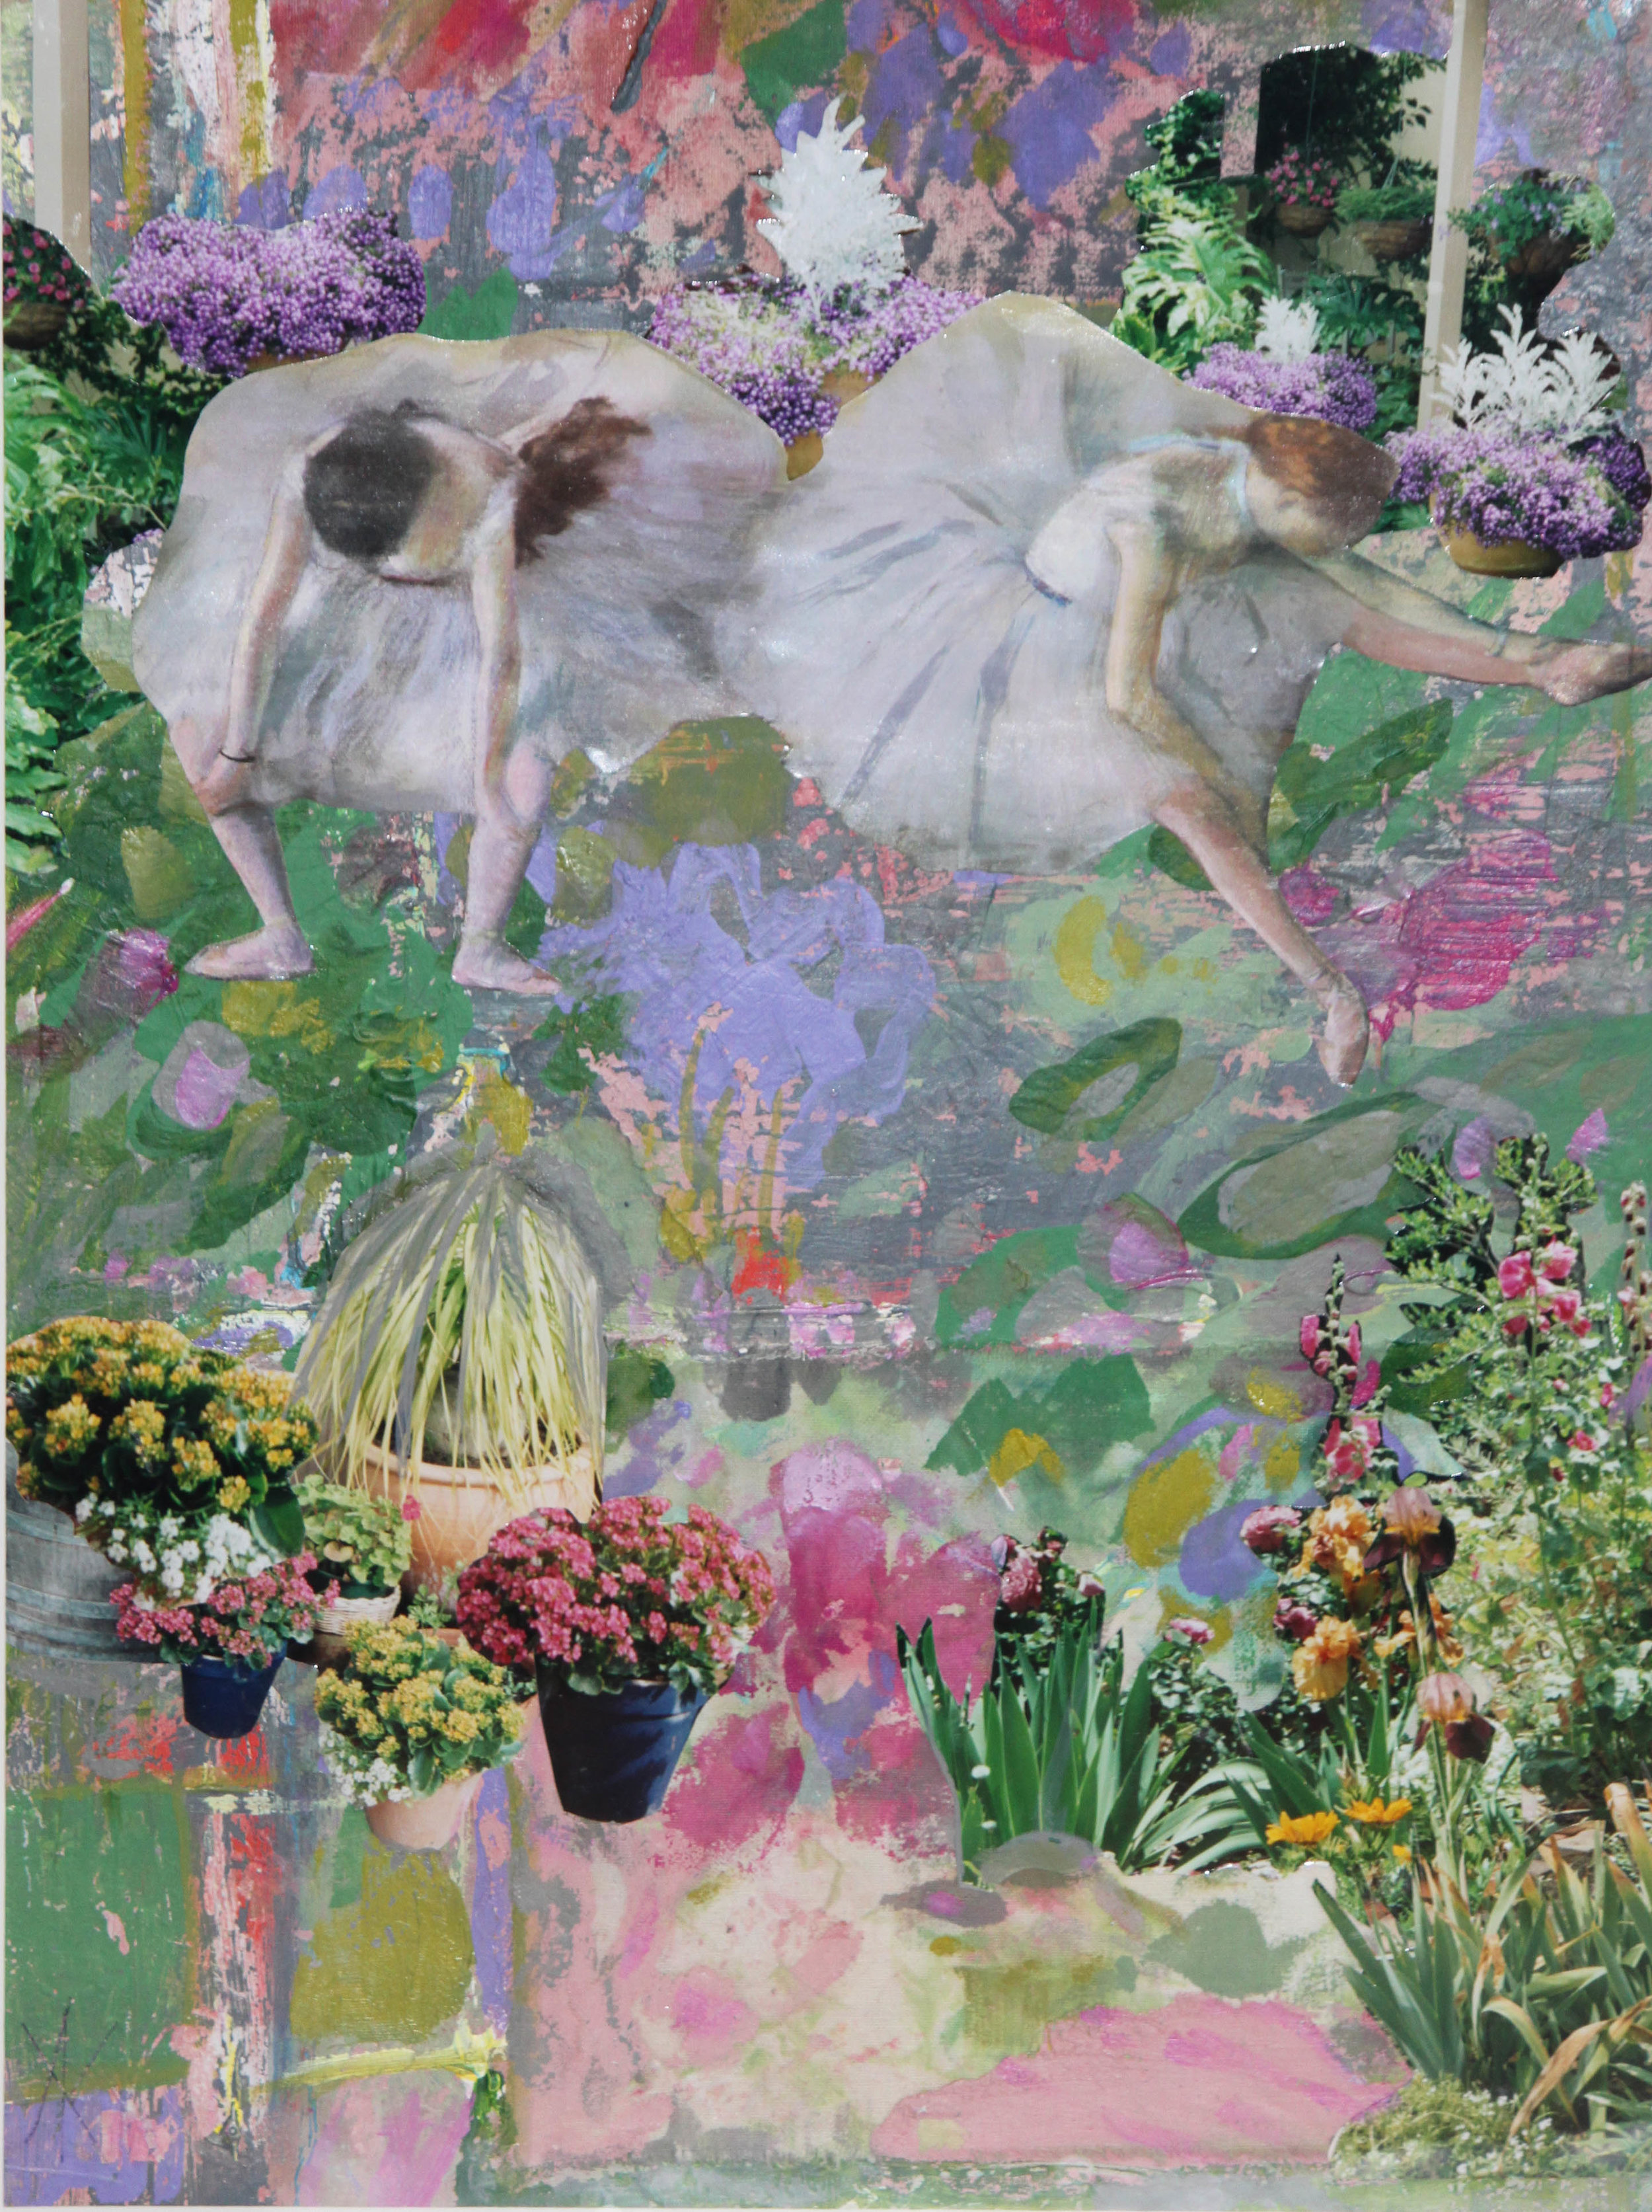 TITLE:  Degas's garden 1  MEDIUM: Acrylic paint and collage on paper DIMENSIONS: H59 x W49cm  FRAMED